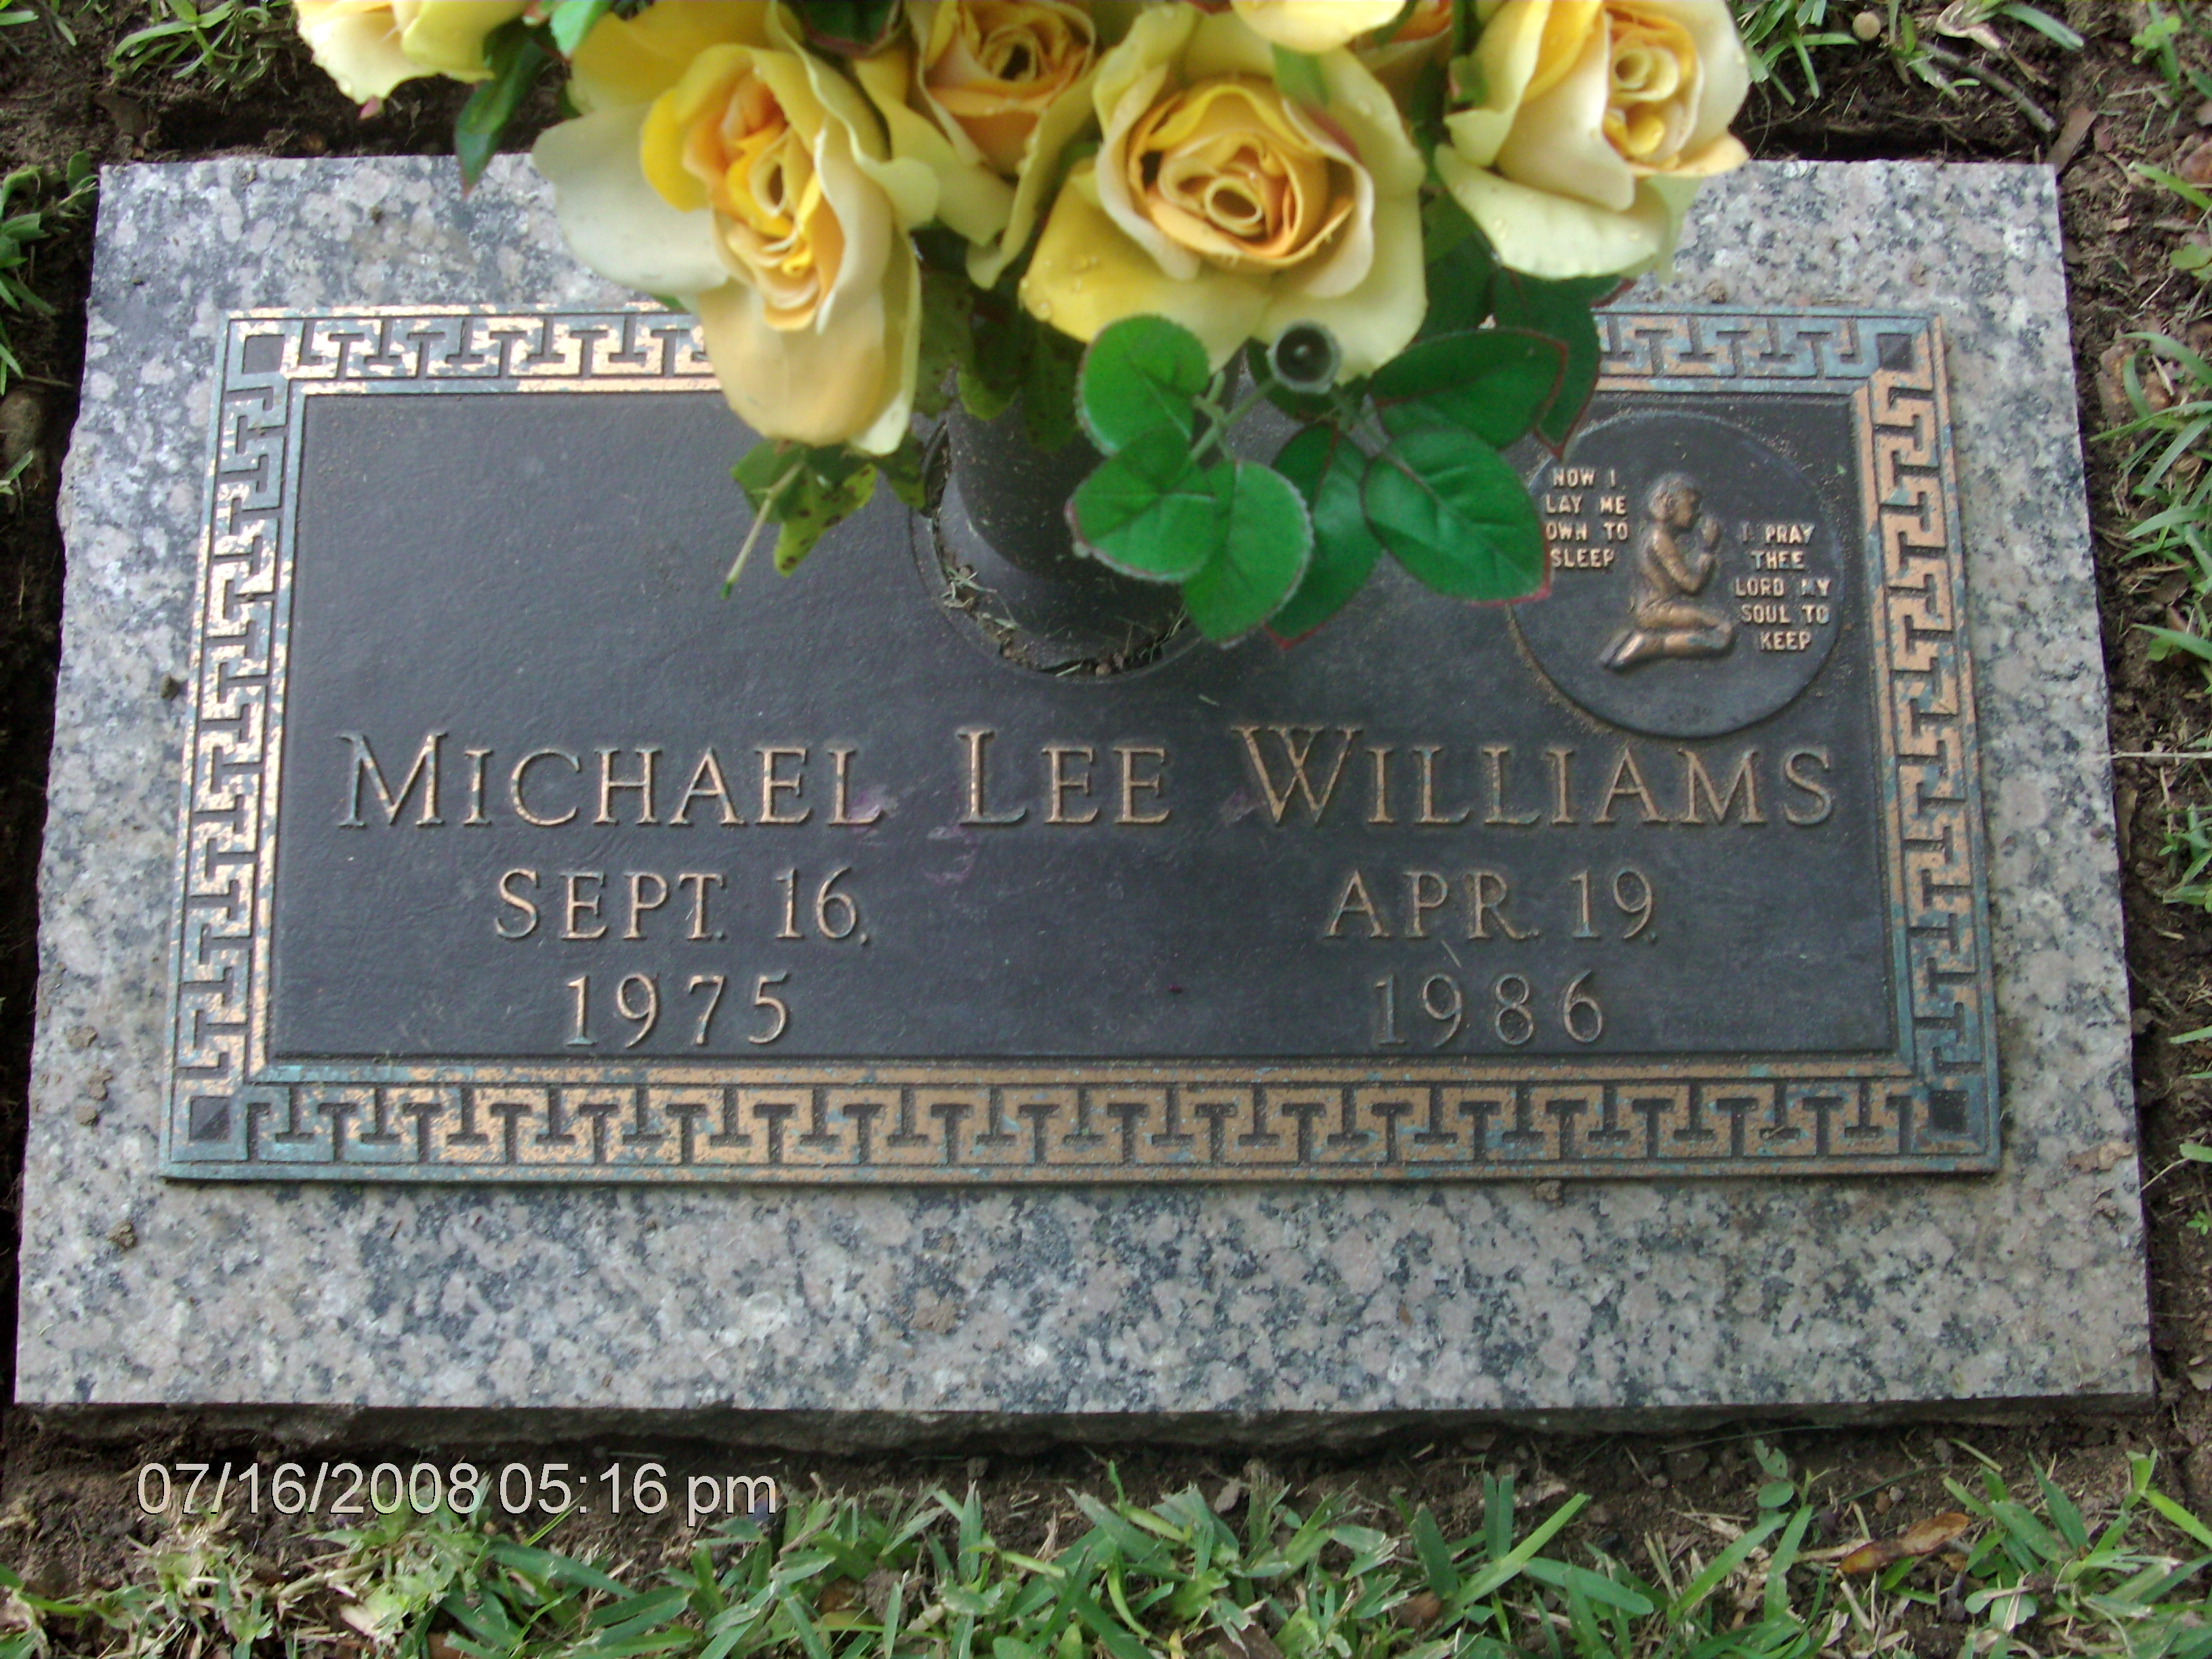 Michael Lee Williams